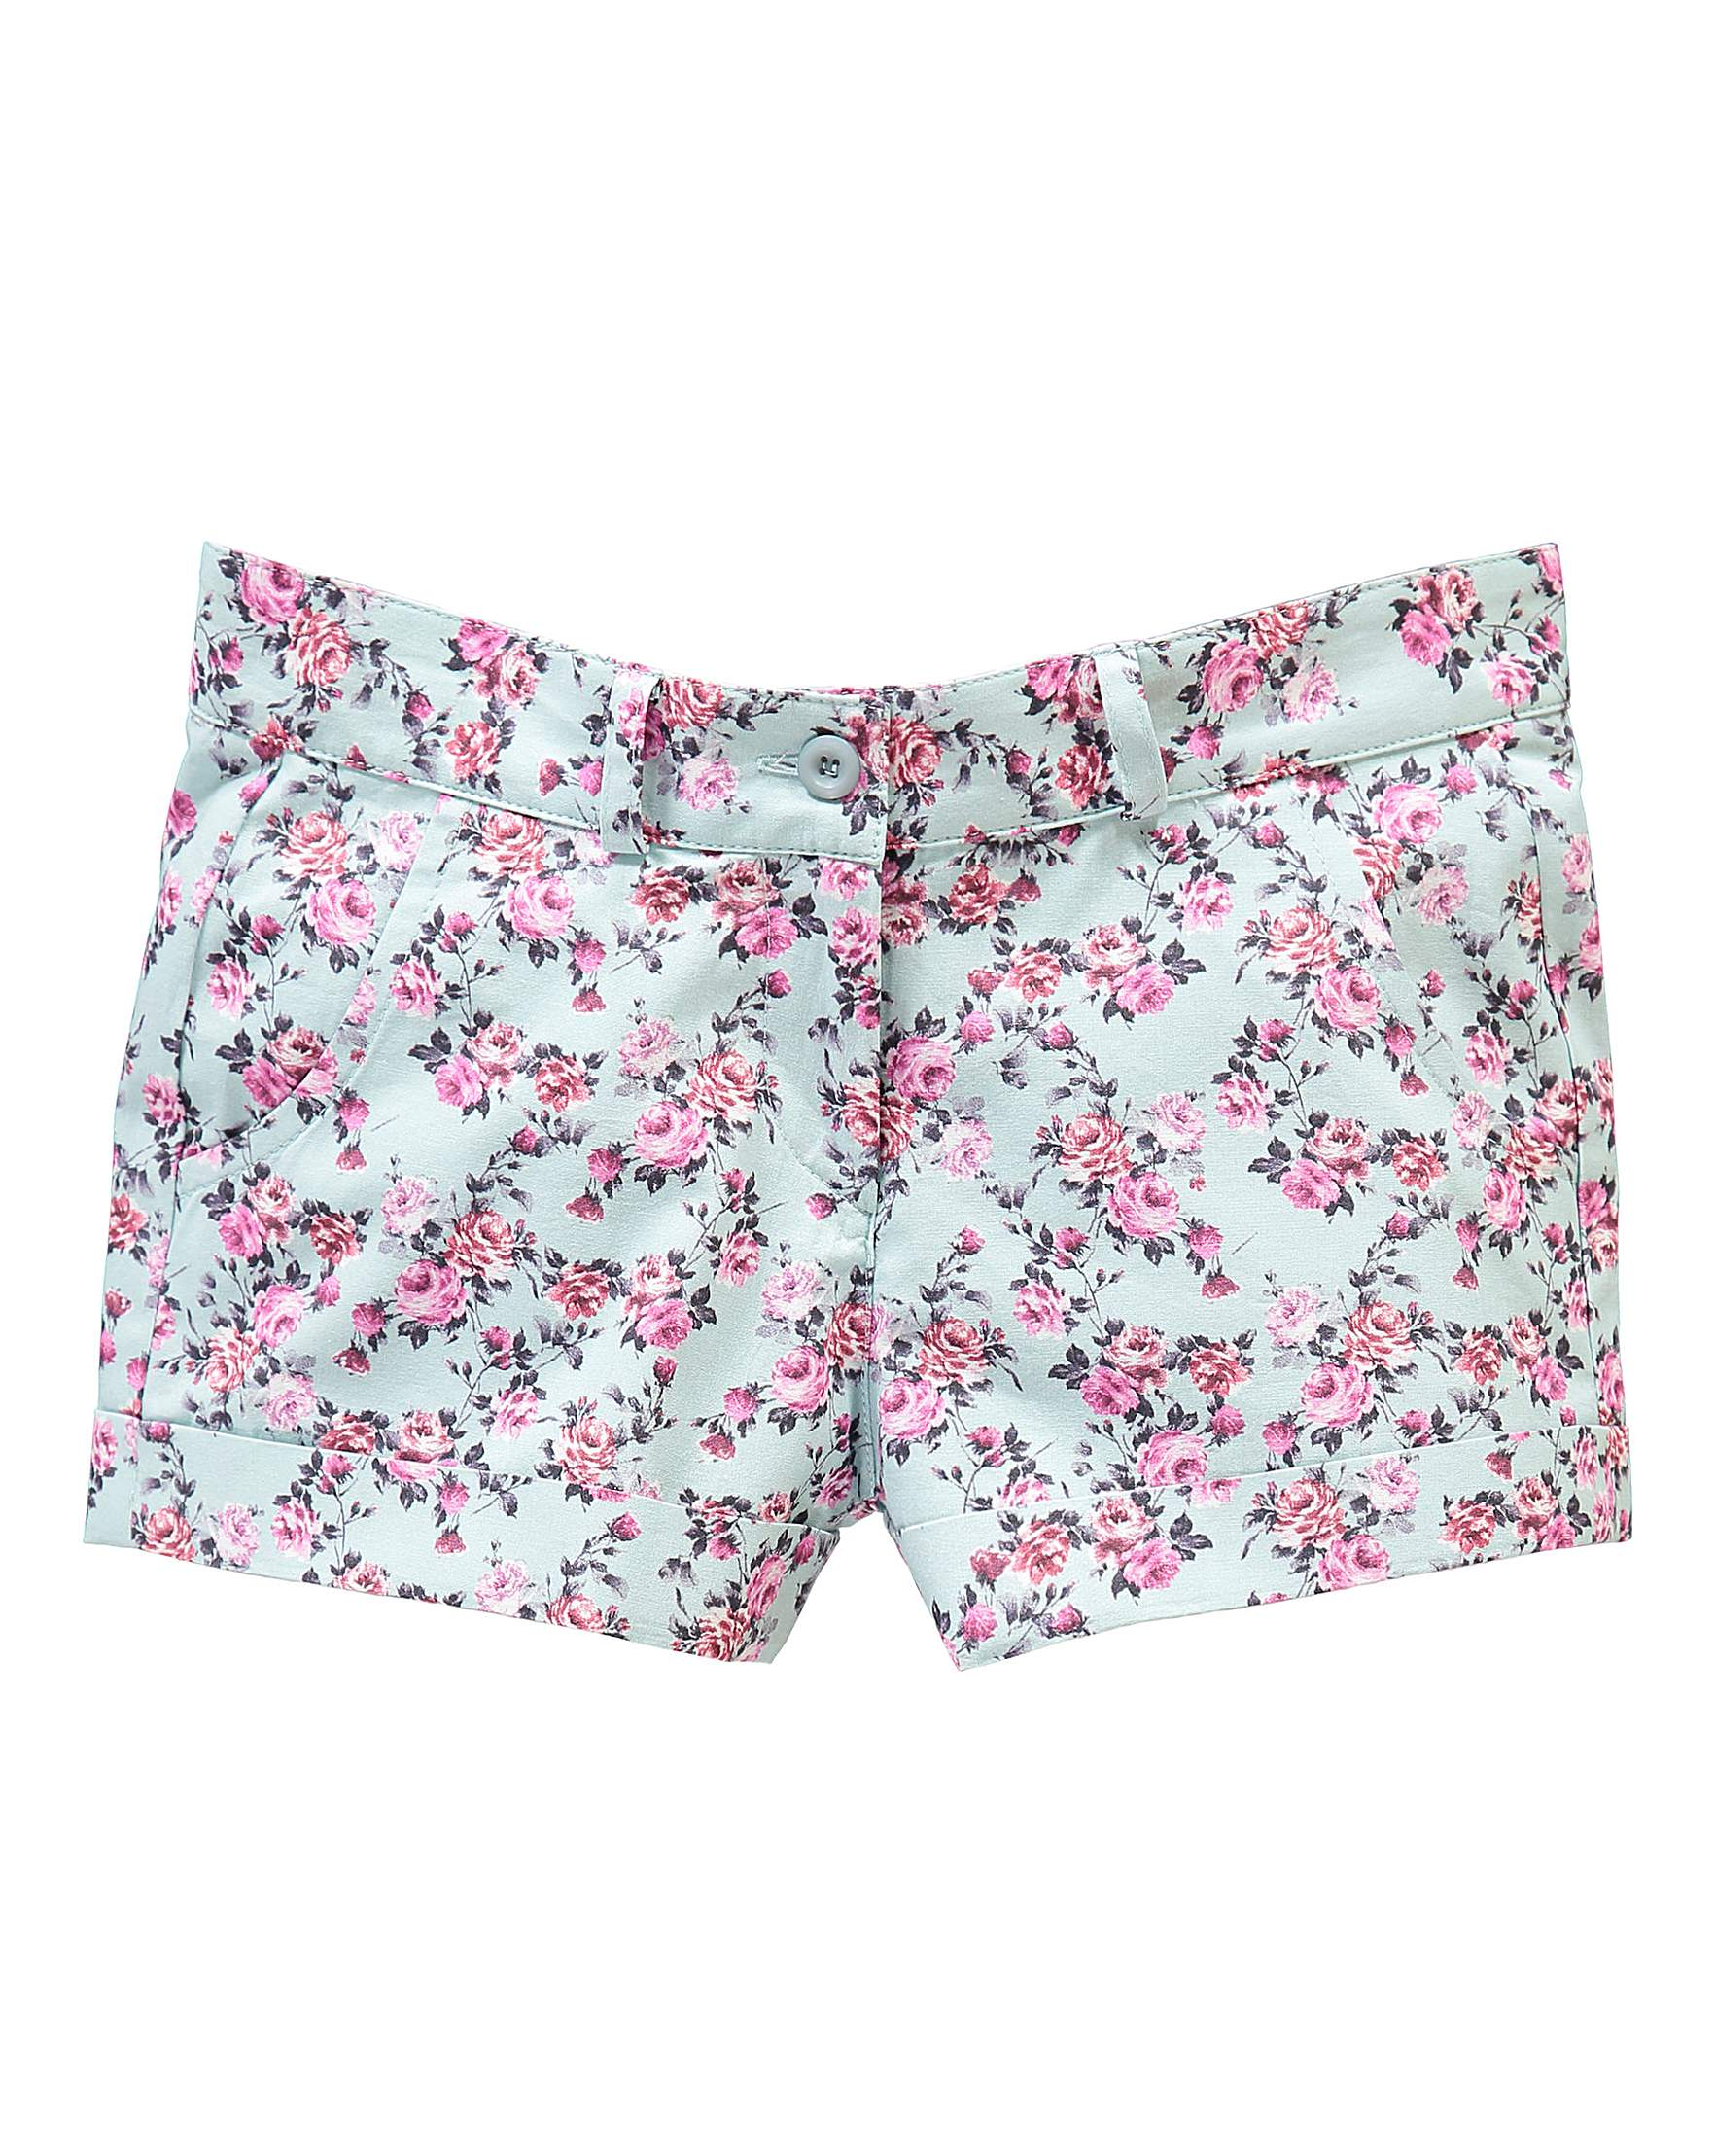 Top KD BABY Floral Shorts